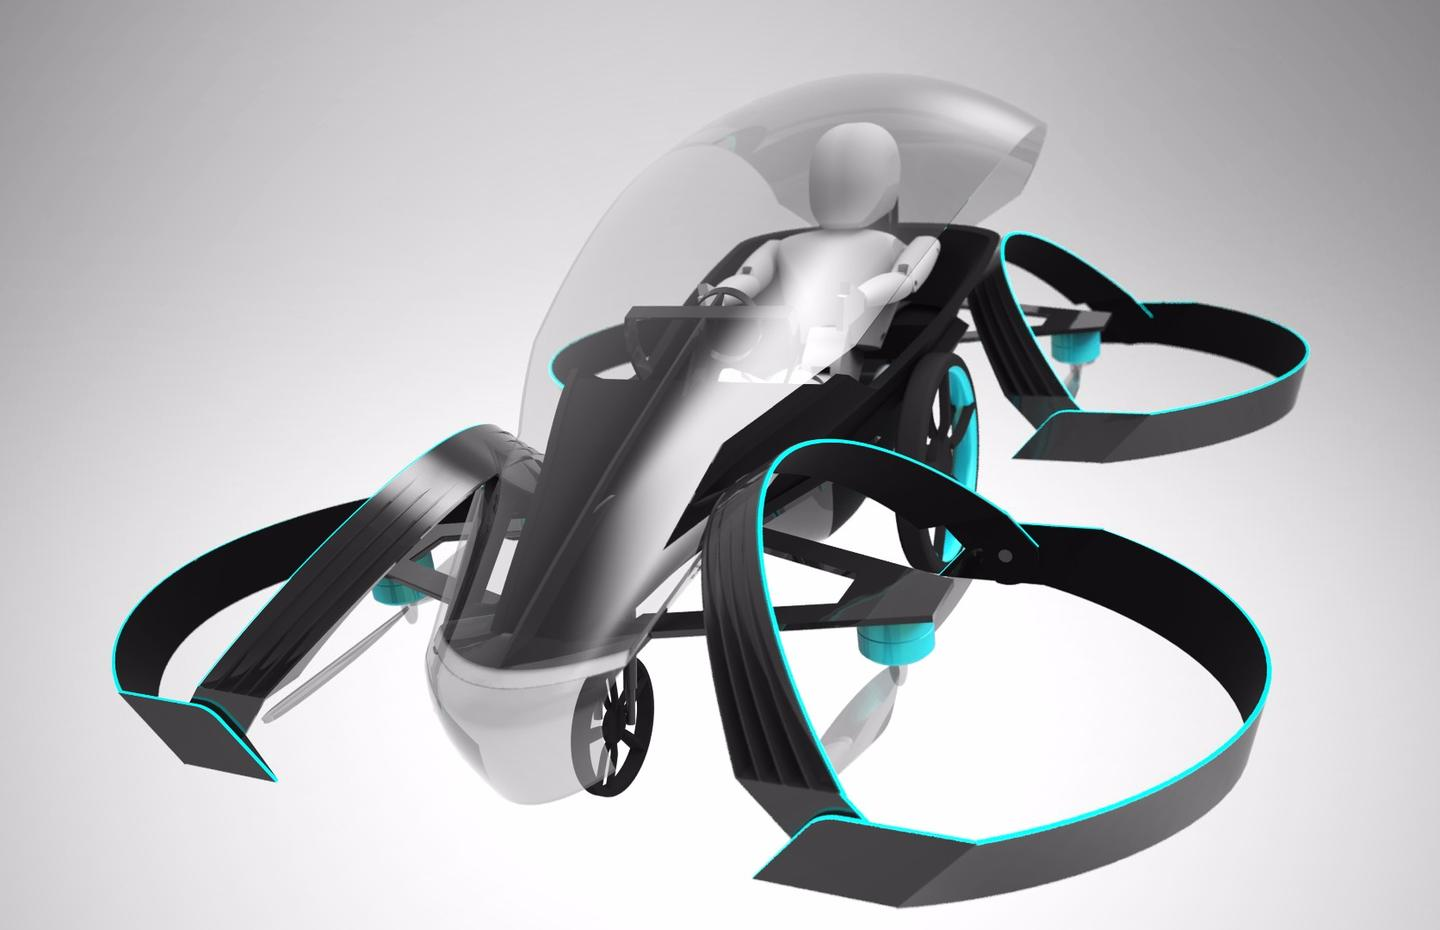 Toyota-backed SkyDrive is a single seat quadcopter-based flying car